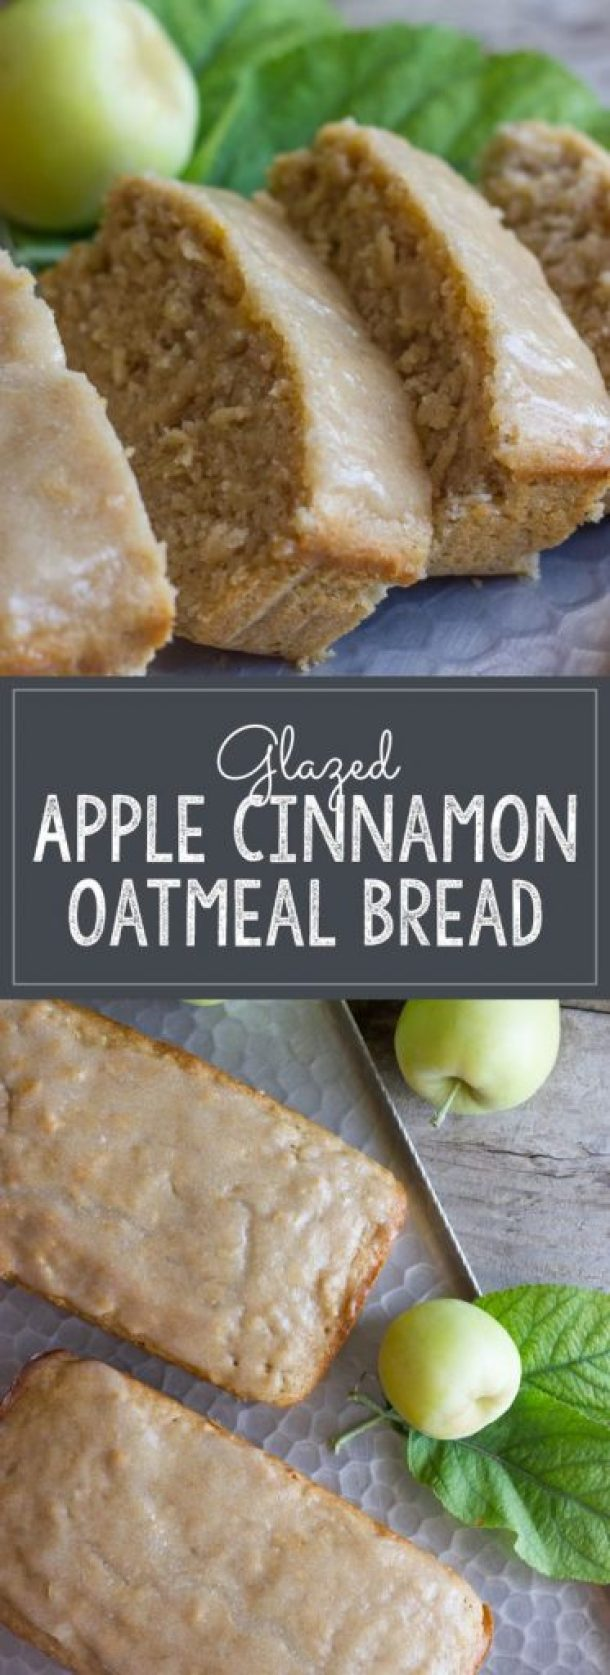 Glazed Apple Cinnamon Oatmeal Bread Recipe | Lovely Little Kitchen - Apple Recipes